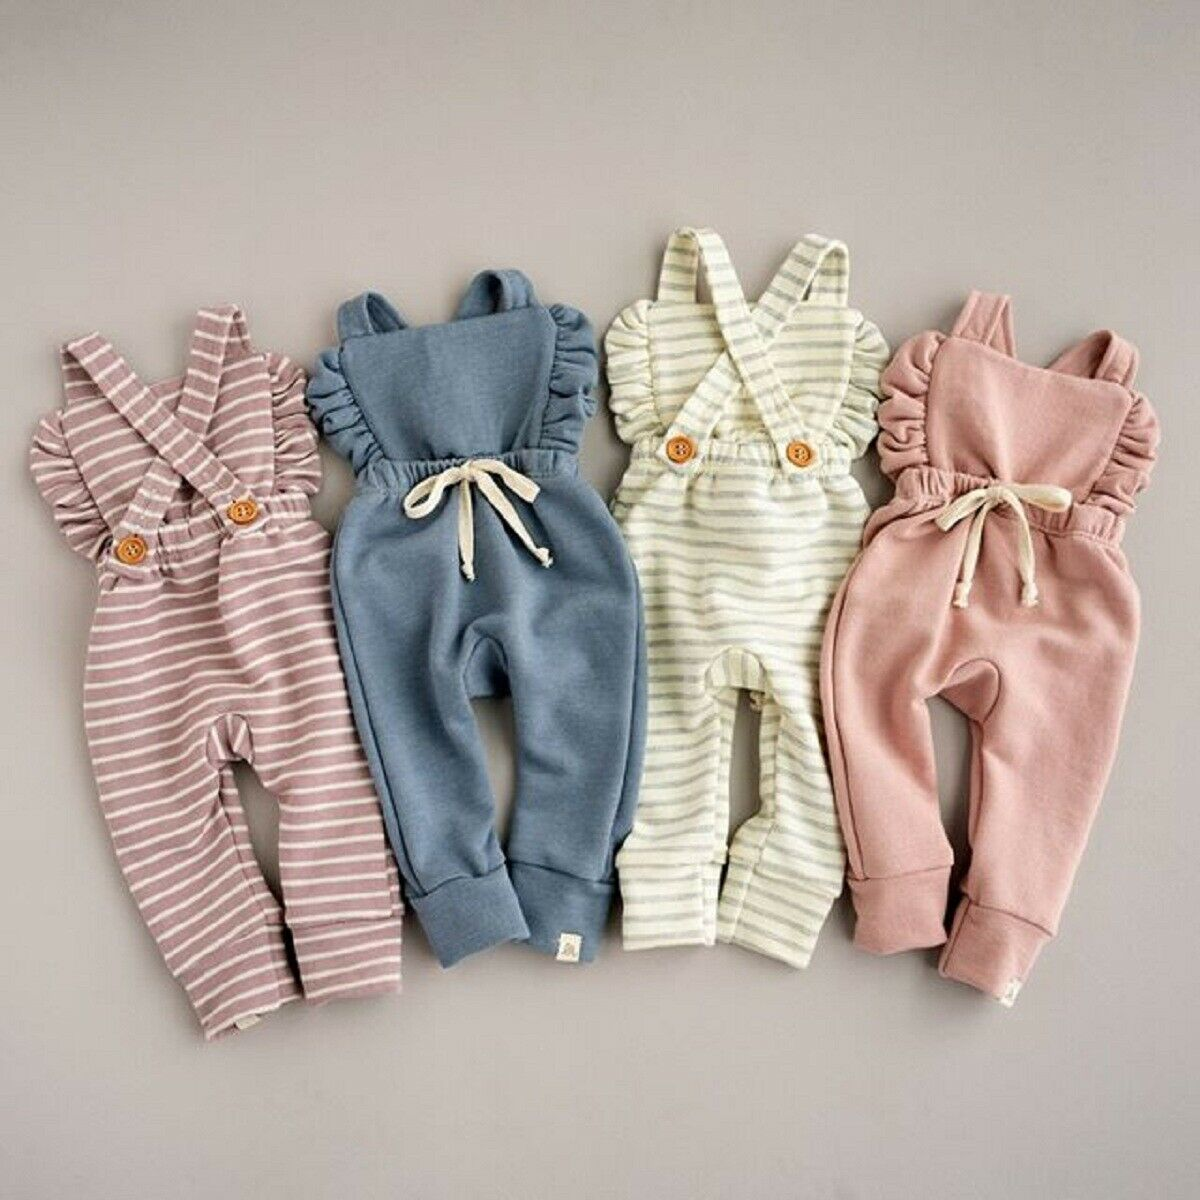 0-3Y New Newborn Baby Girl Ruffle   Romper   Sleeveless Backless Jumpsuit Bib Pants Sunsuit Clothes Cotton Outfits